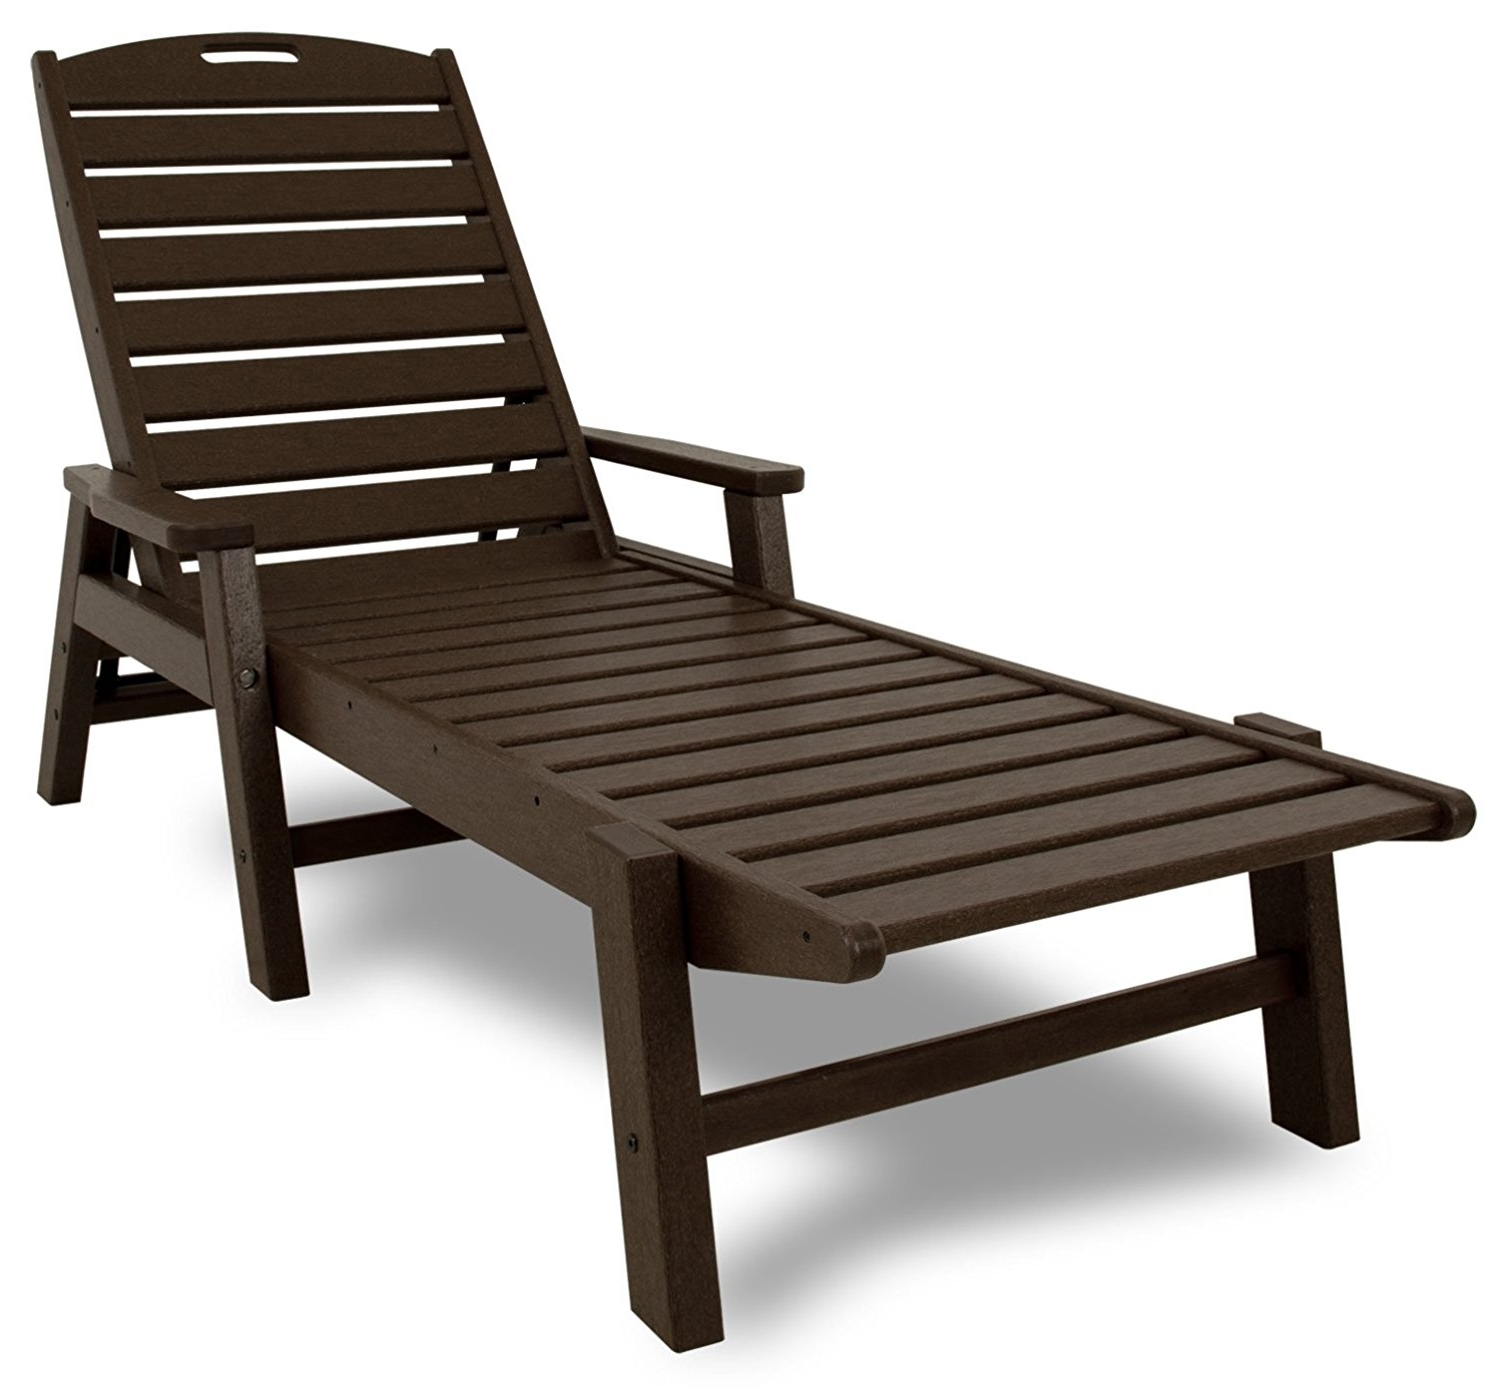 2017 Outdoor Chaise Lounge Chairs With Arms In Amazon : Polywood Ncc2280Ma Nautical Chaise With Arms (View 1 of 15)